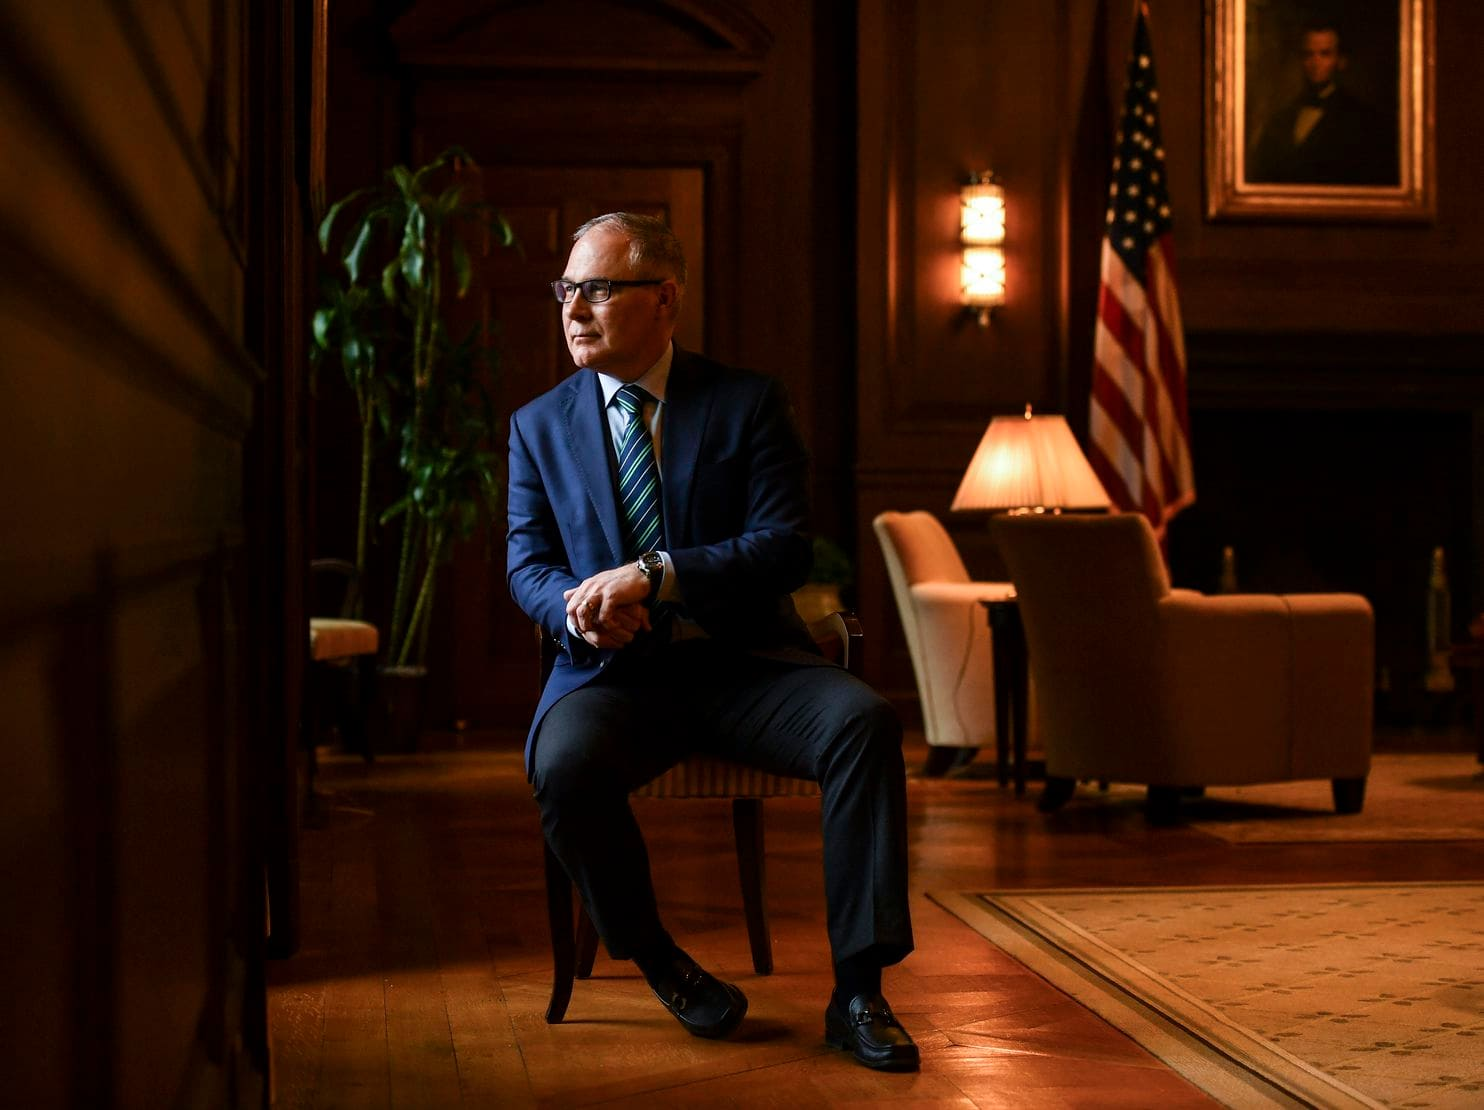 The Environmental Protection Agency watchdog suggests trying to recover some of the money spent by former EPA administrator Scott Pruitt, shown in his office at EPA headquarters, for travel.